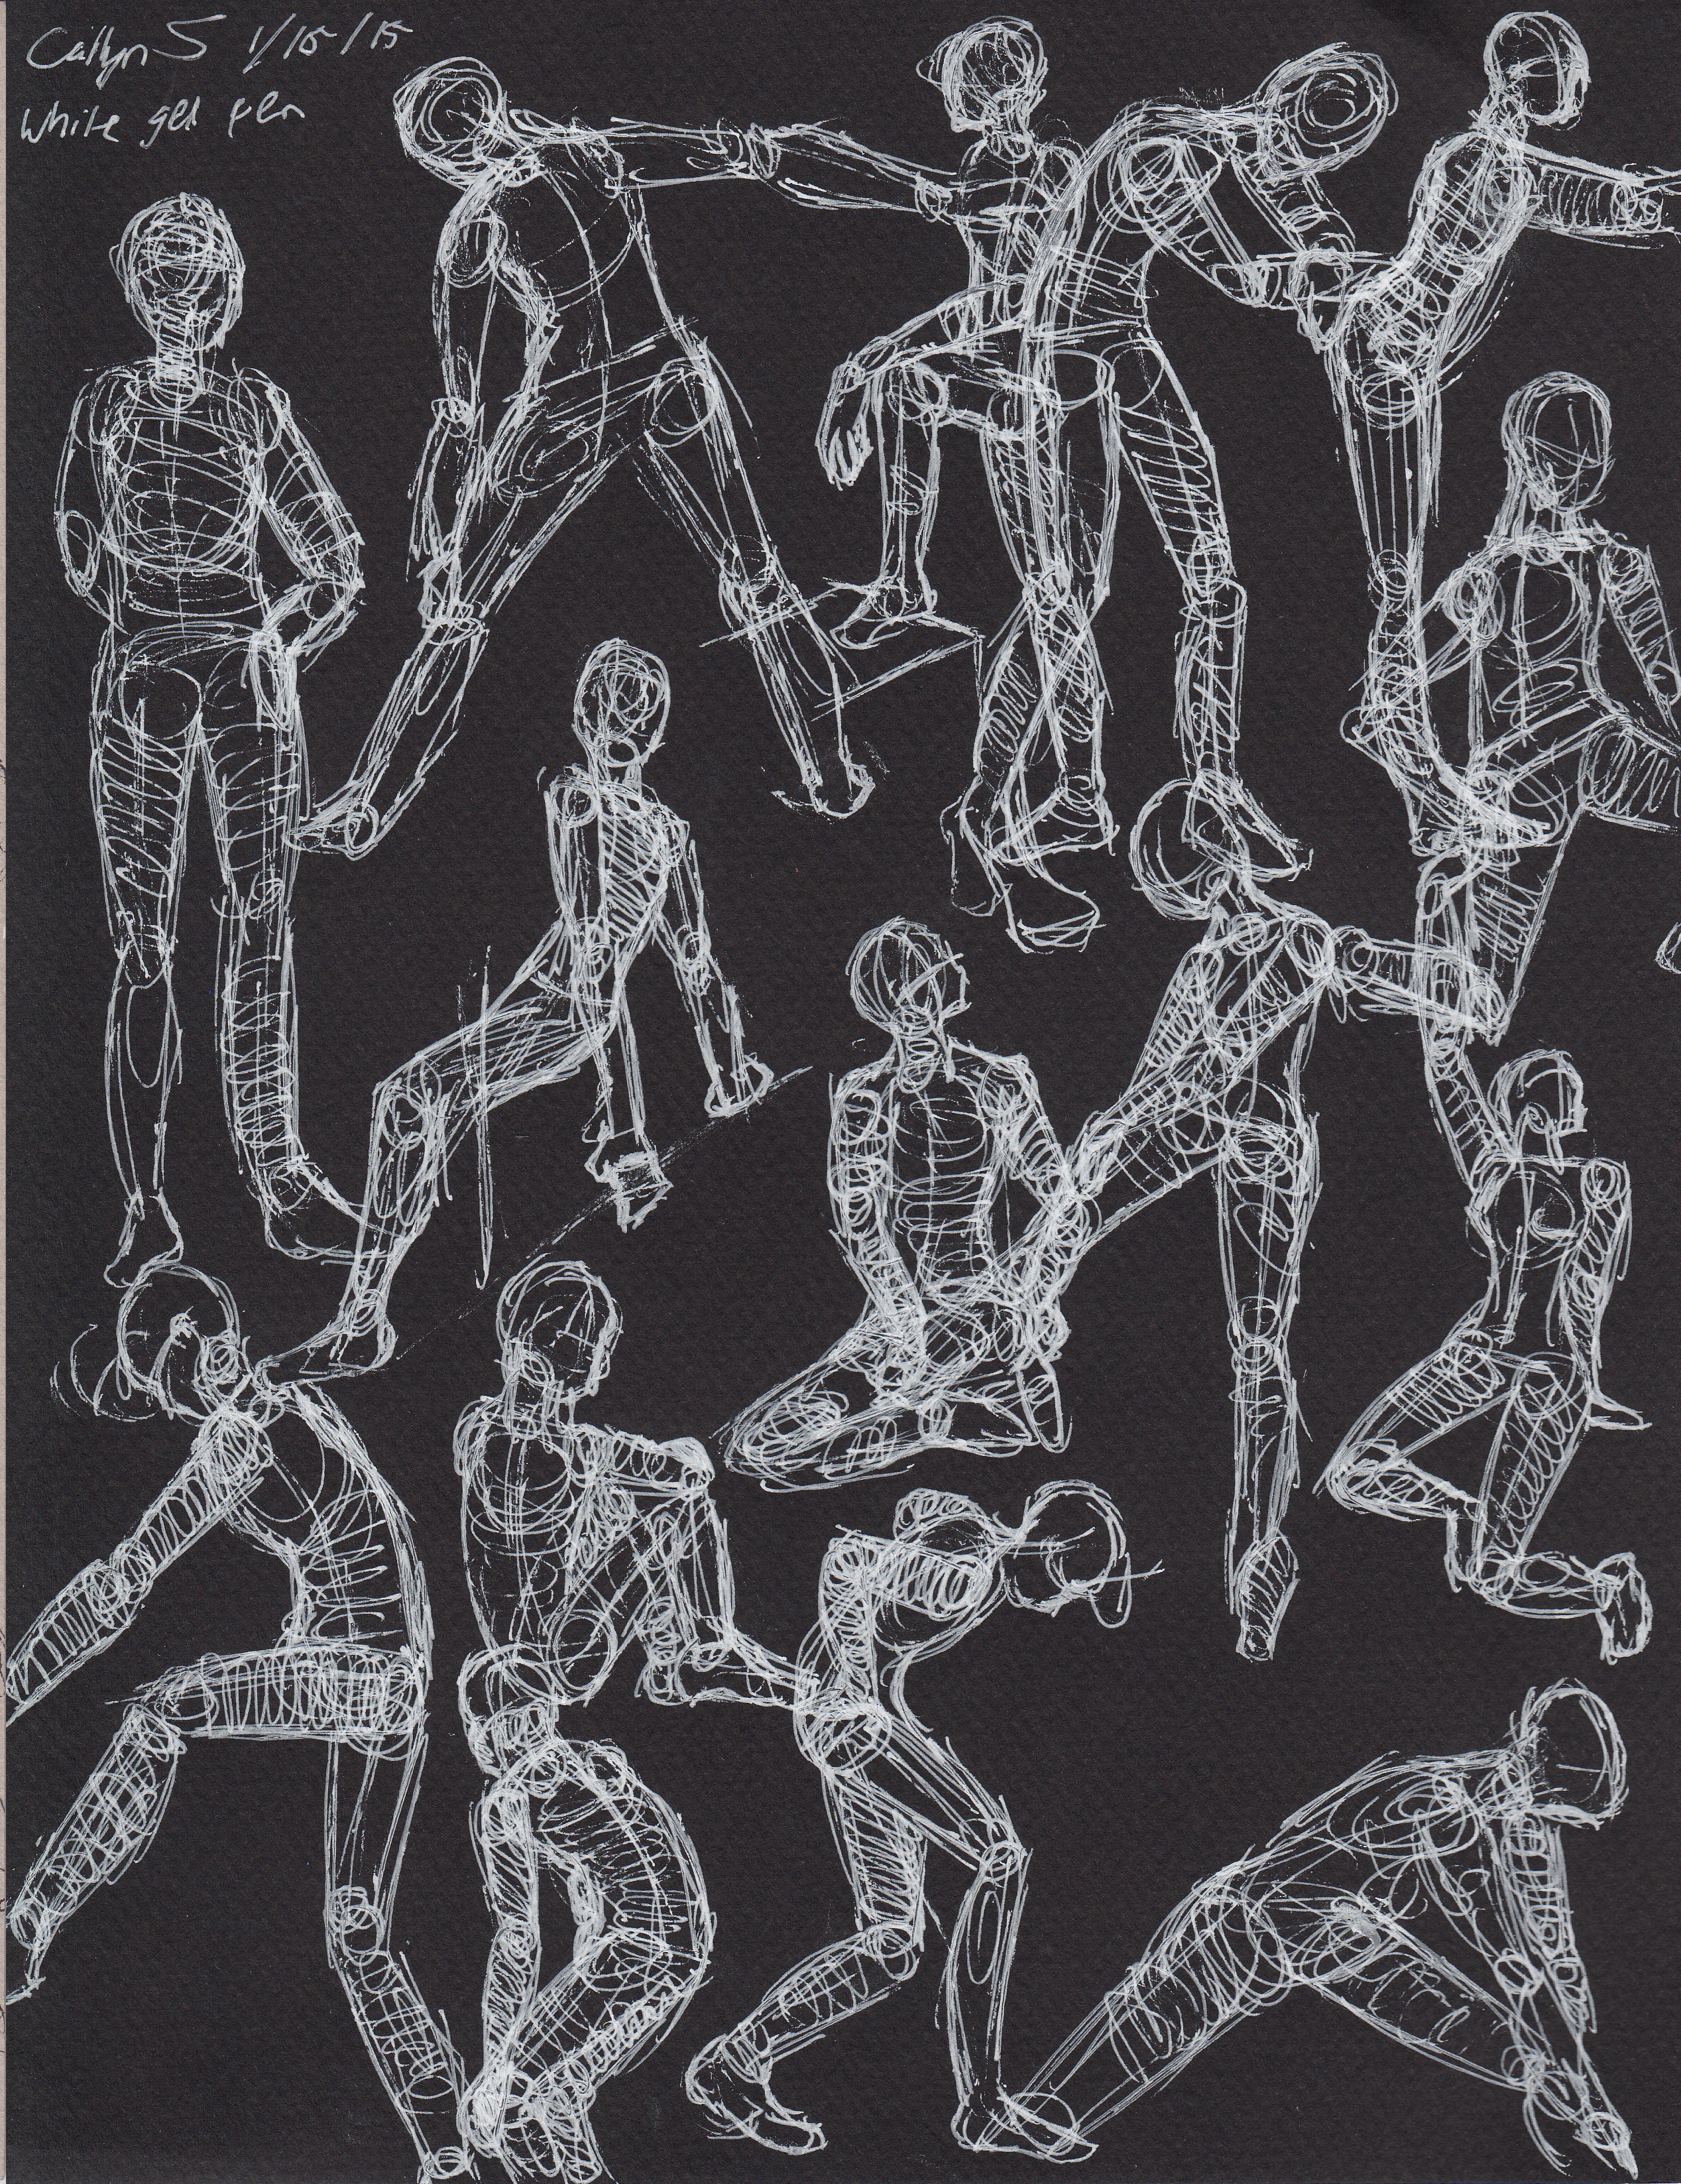 Square and Circle Gestures_4